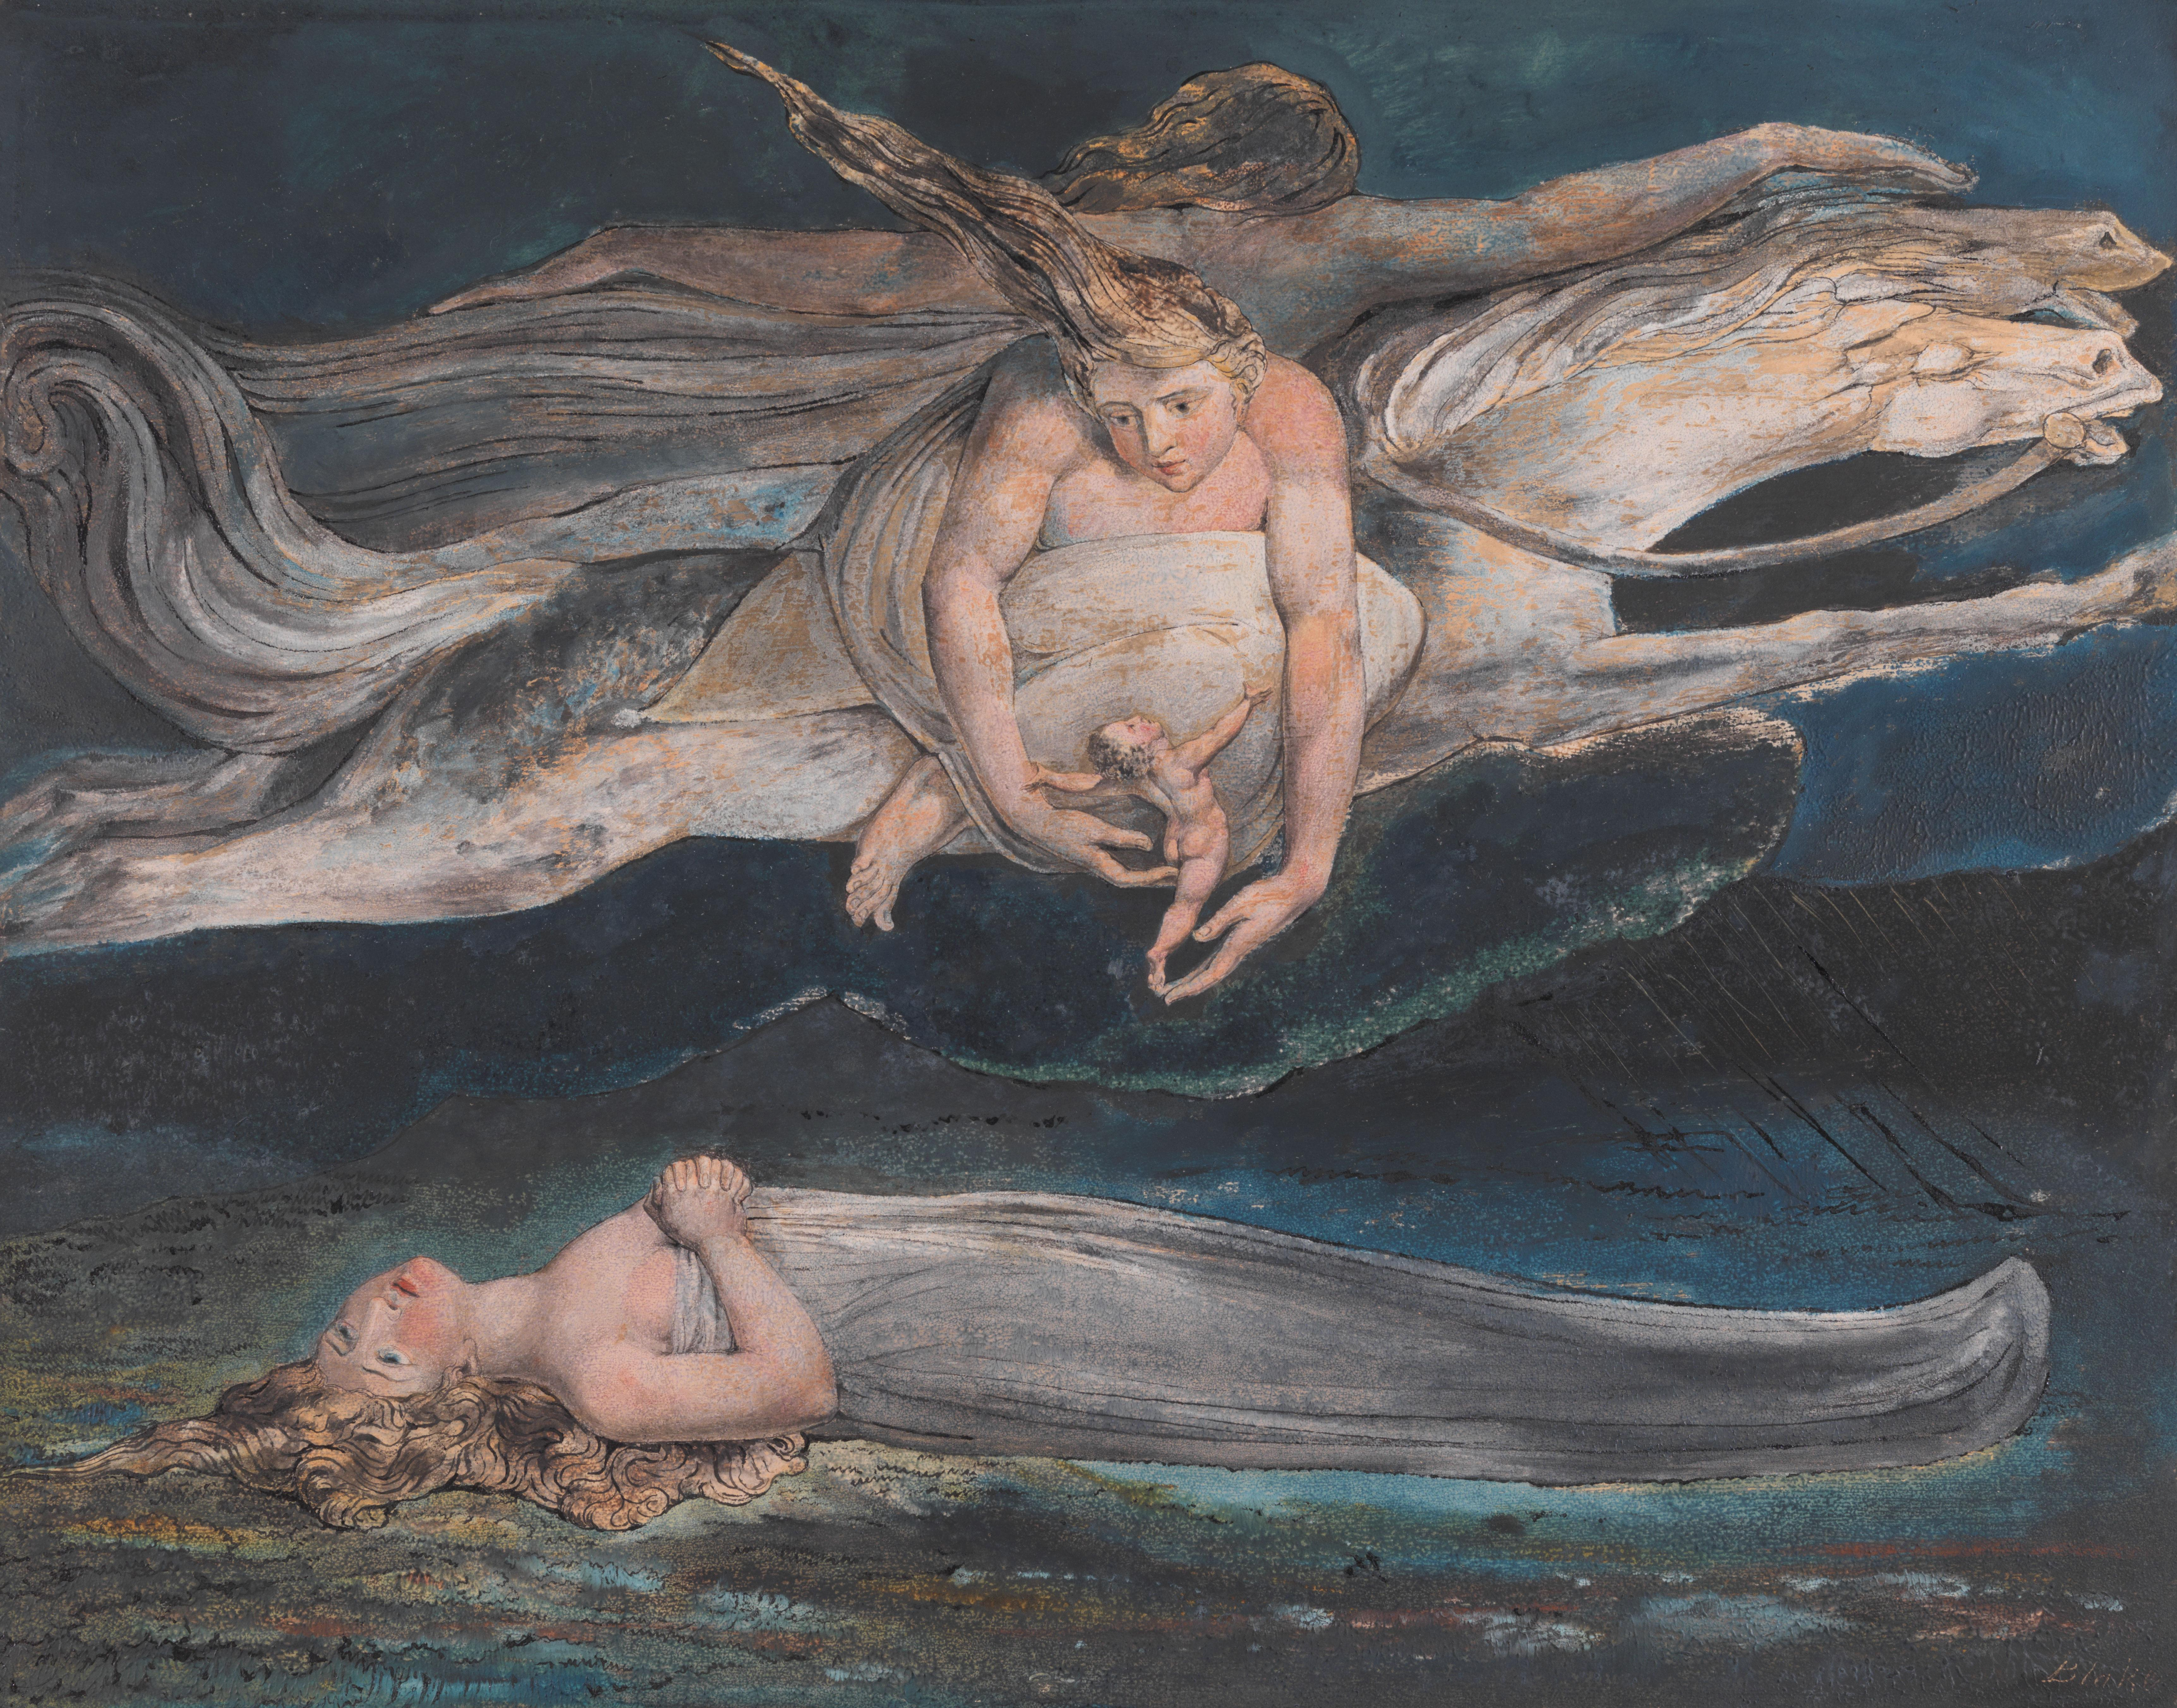 William Blake review – blazing heresies from the artist who blows Constable and Turner away